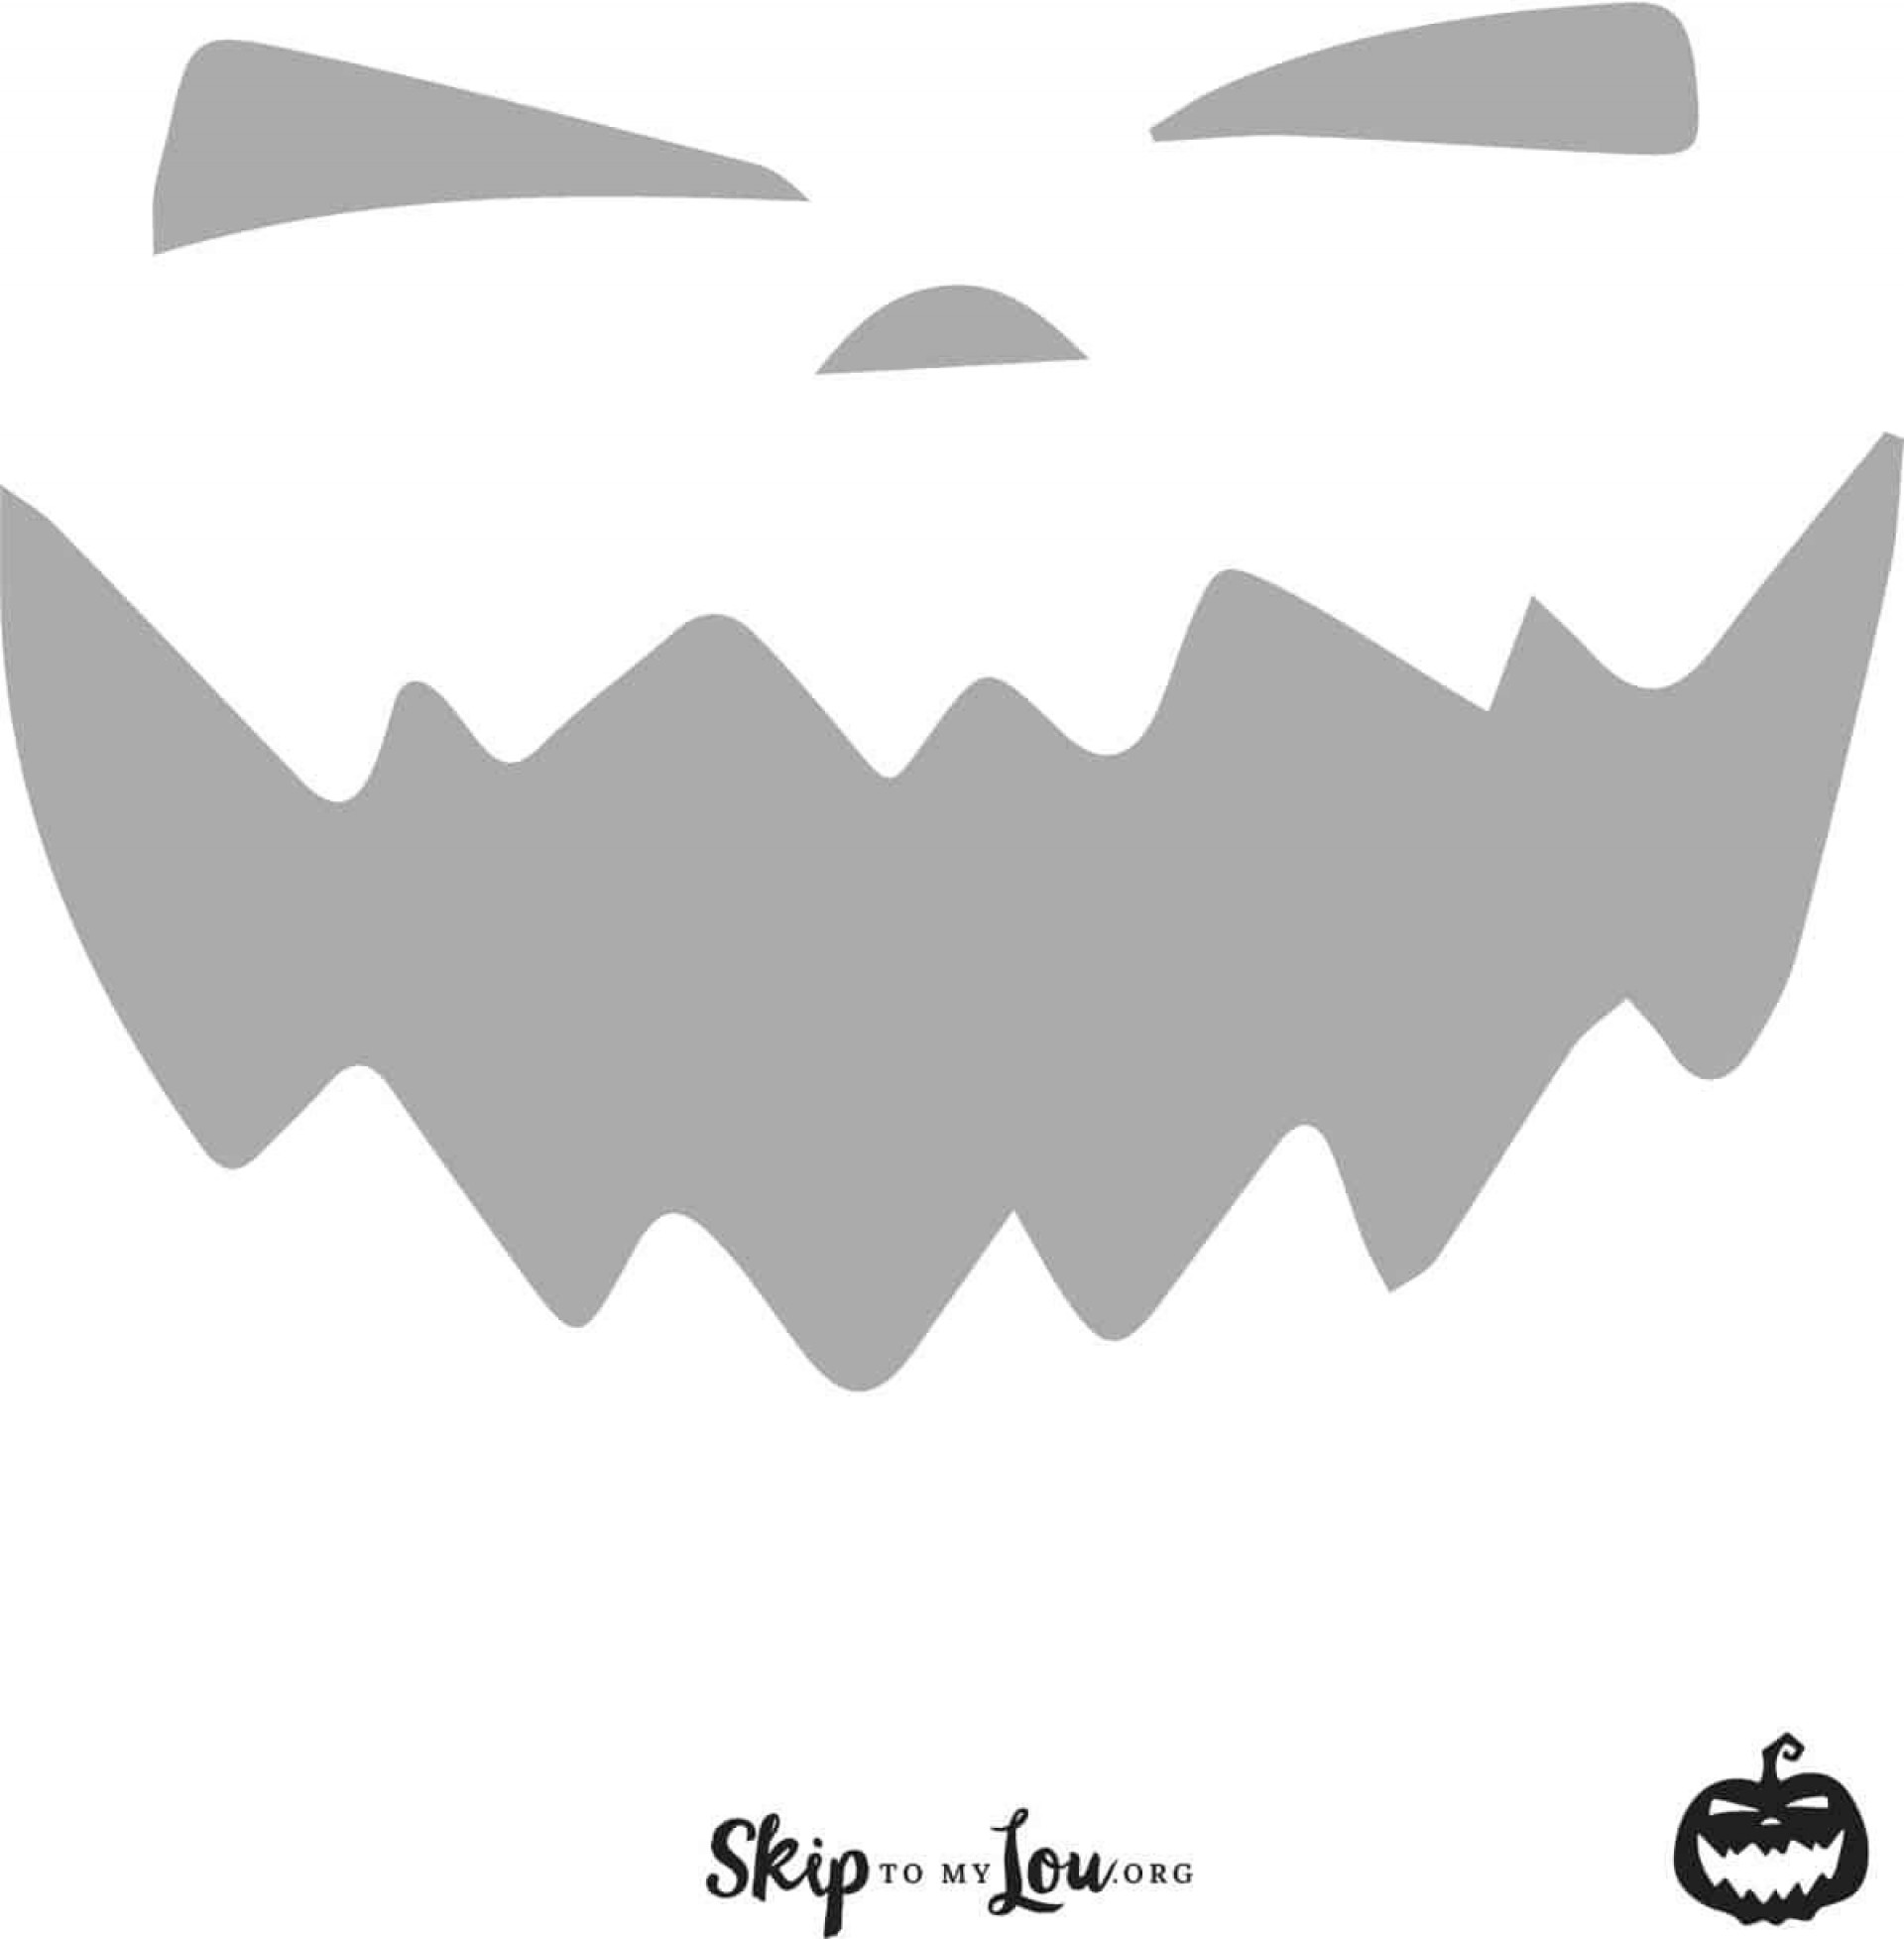 007 Phenomenal Free Pumpkin Template Printable Image  Easy Carving Scary Stencil1920